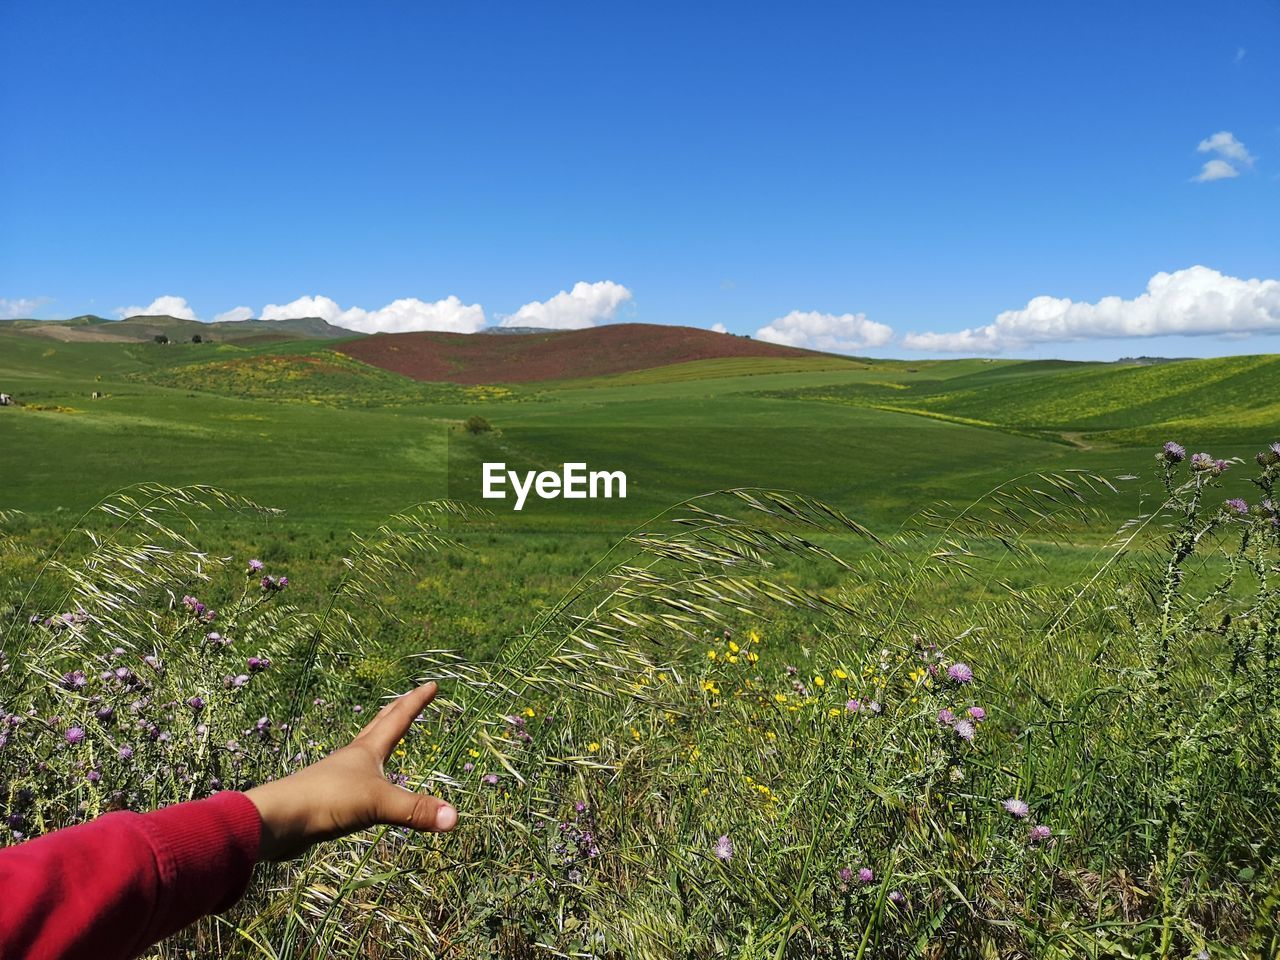 plant, field, land, sky, landscape, beauty in nature, environment, growth, one person, hand, real people, nature, green color, human hand, day, leisure activity, scenics - nature, human body part, tranquil scene, rural scene, outdoors, body part, finger